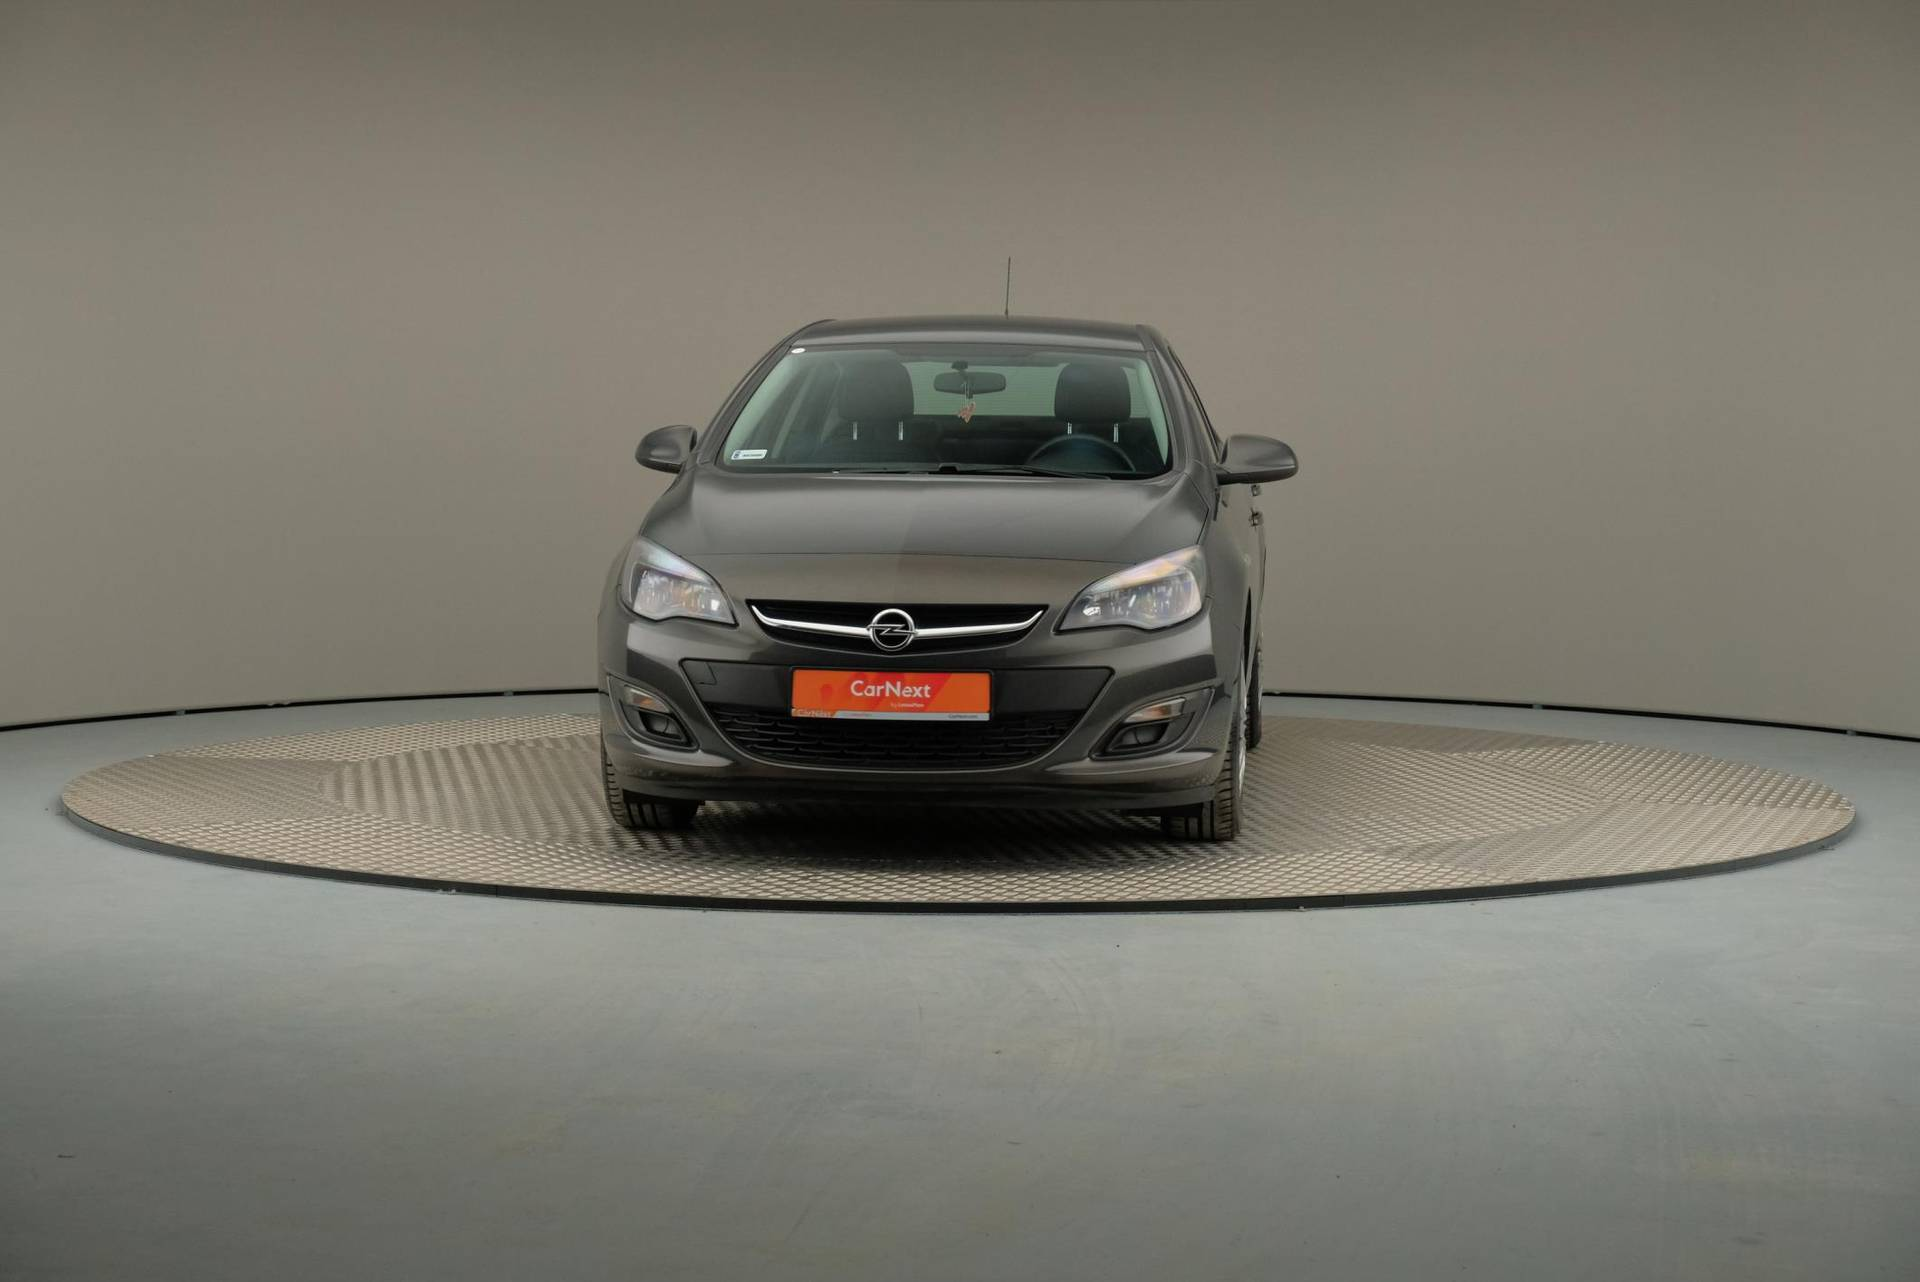 Opel Astra Astra 1.6 Twinport 115km, 360-image32